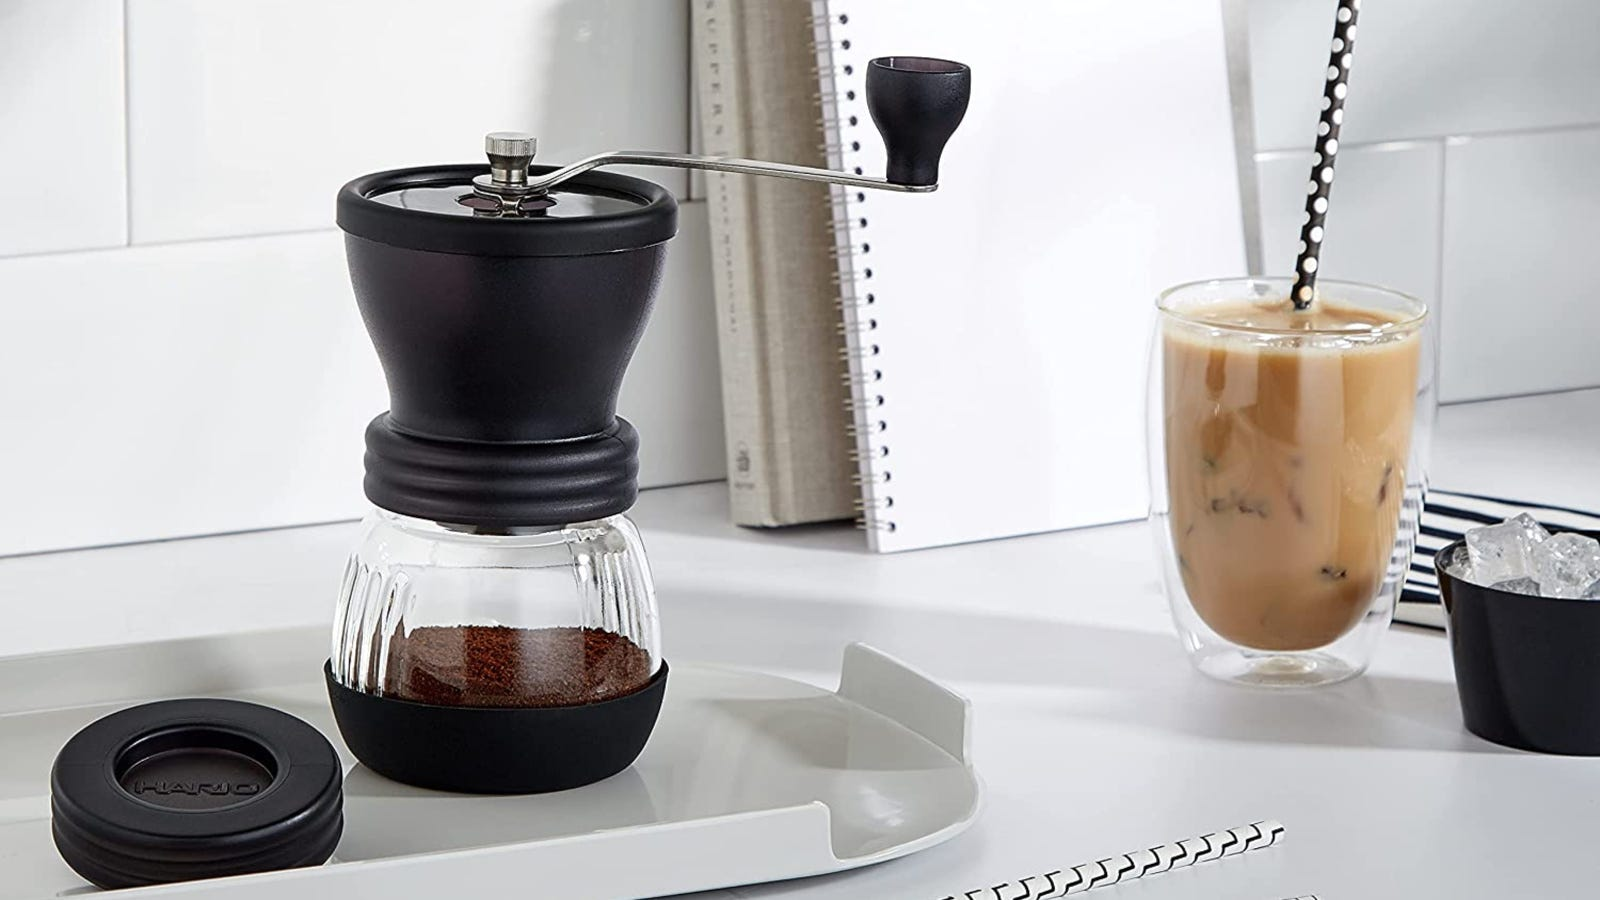 An image of the Hario ceramic mill placed over a plastic try with an iced coffee dirnk on the side.